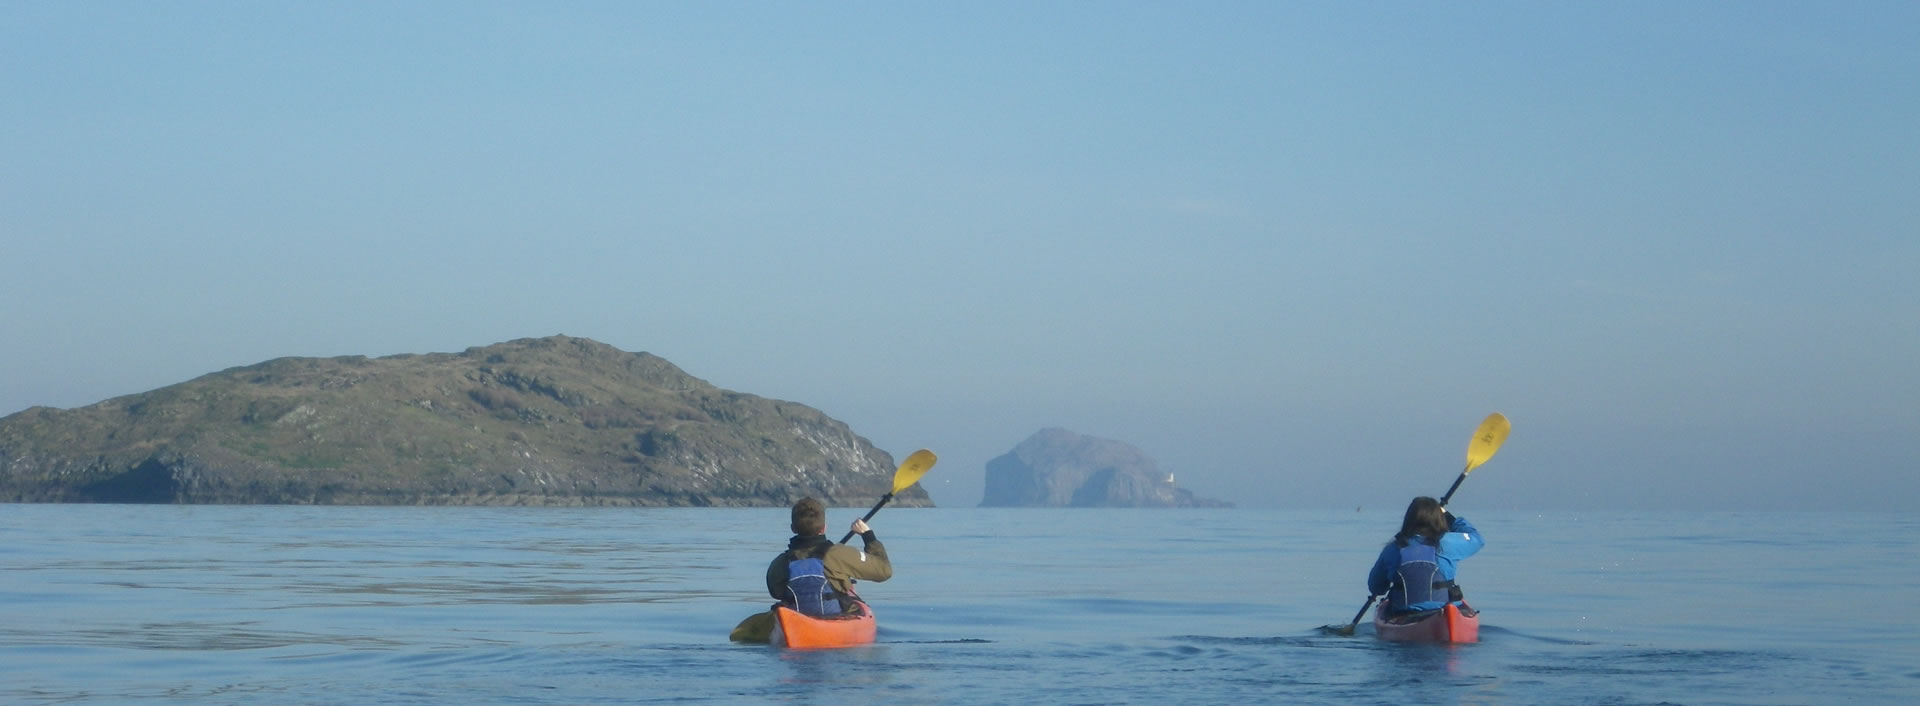 sea kayaking edinburgh